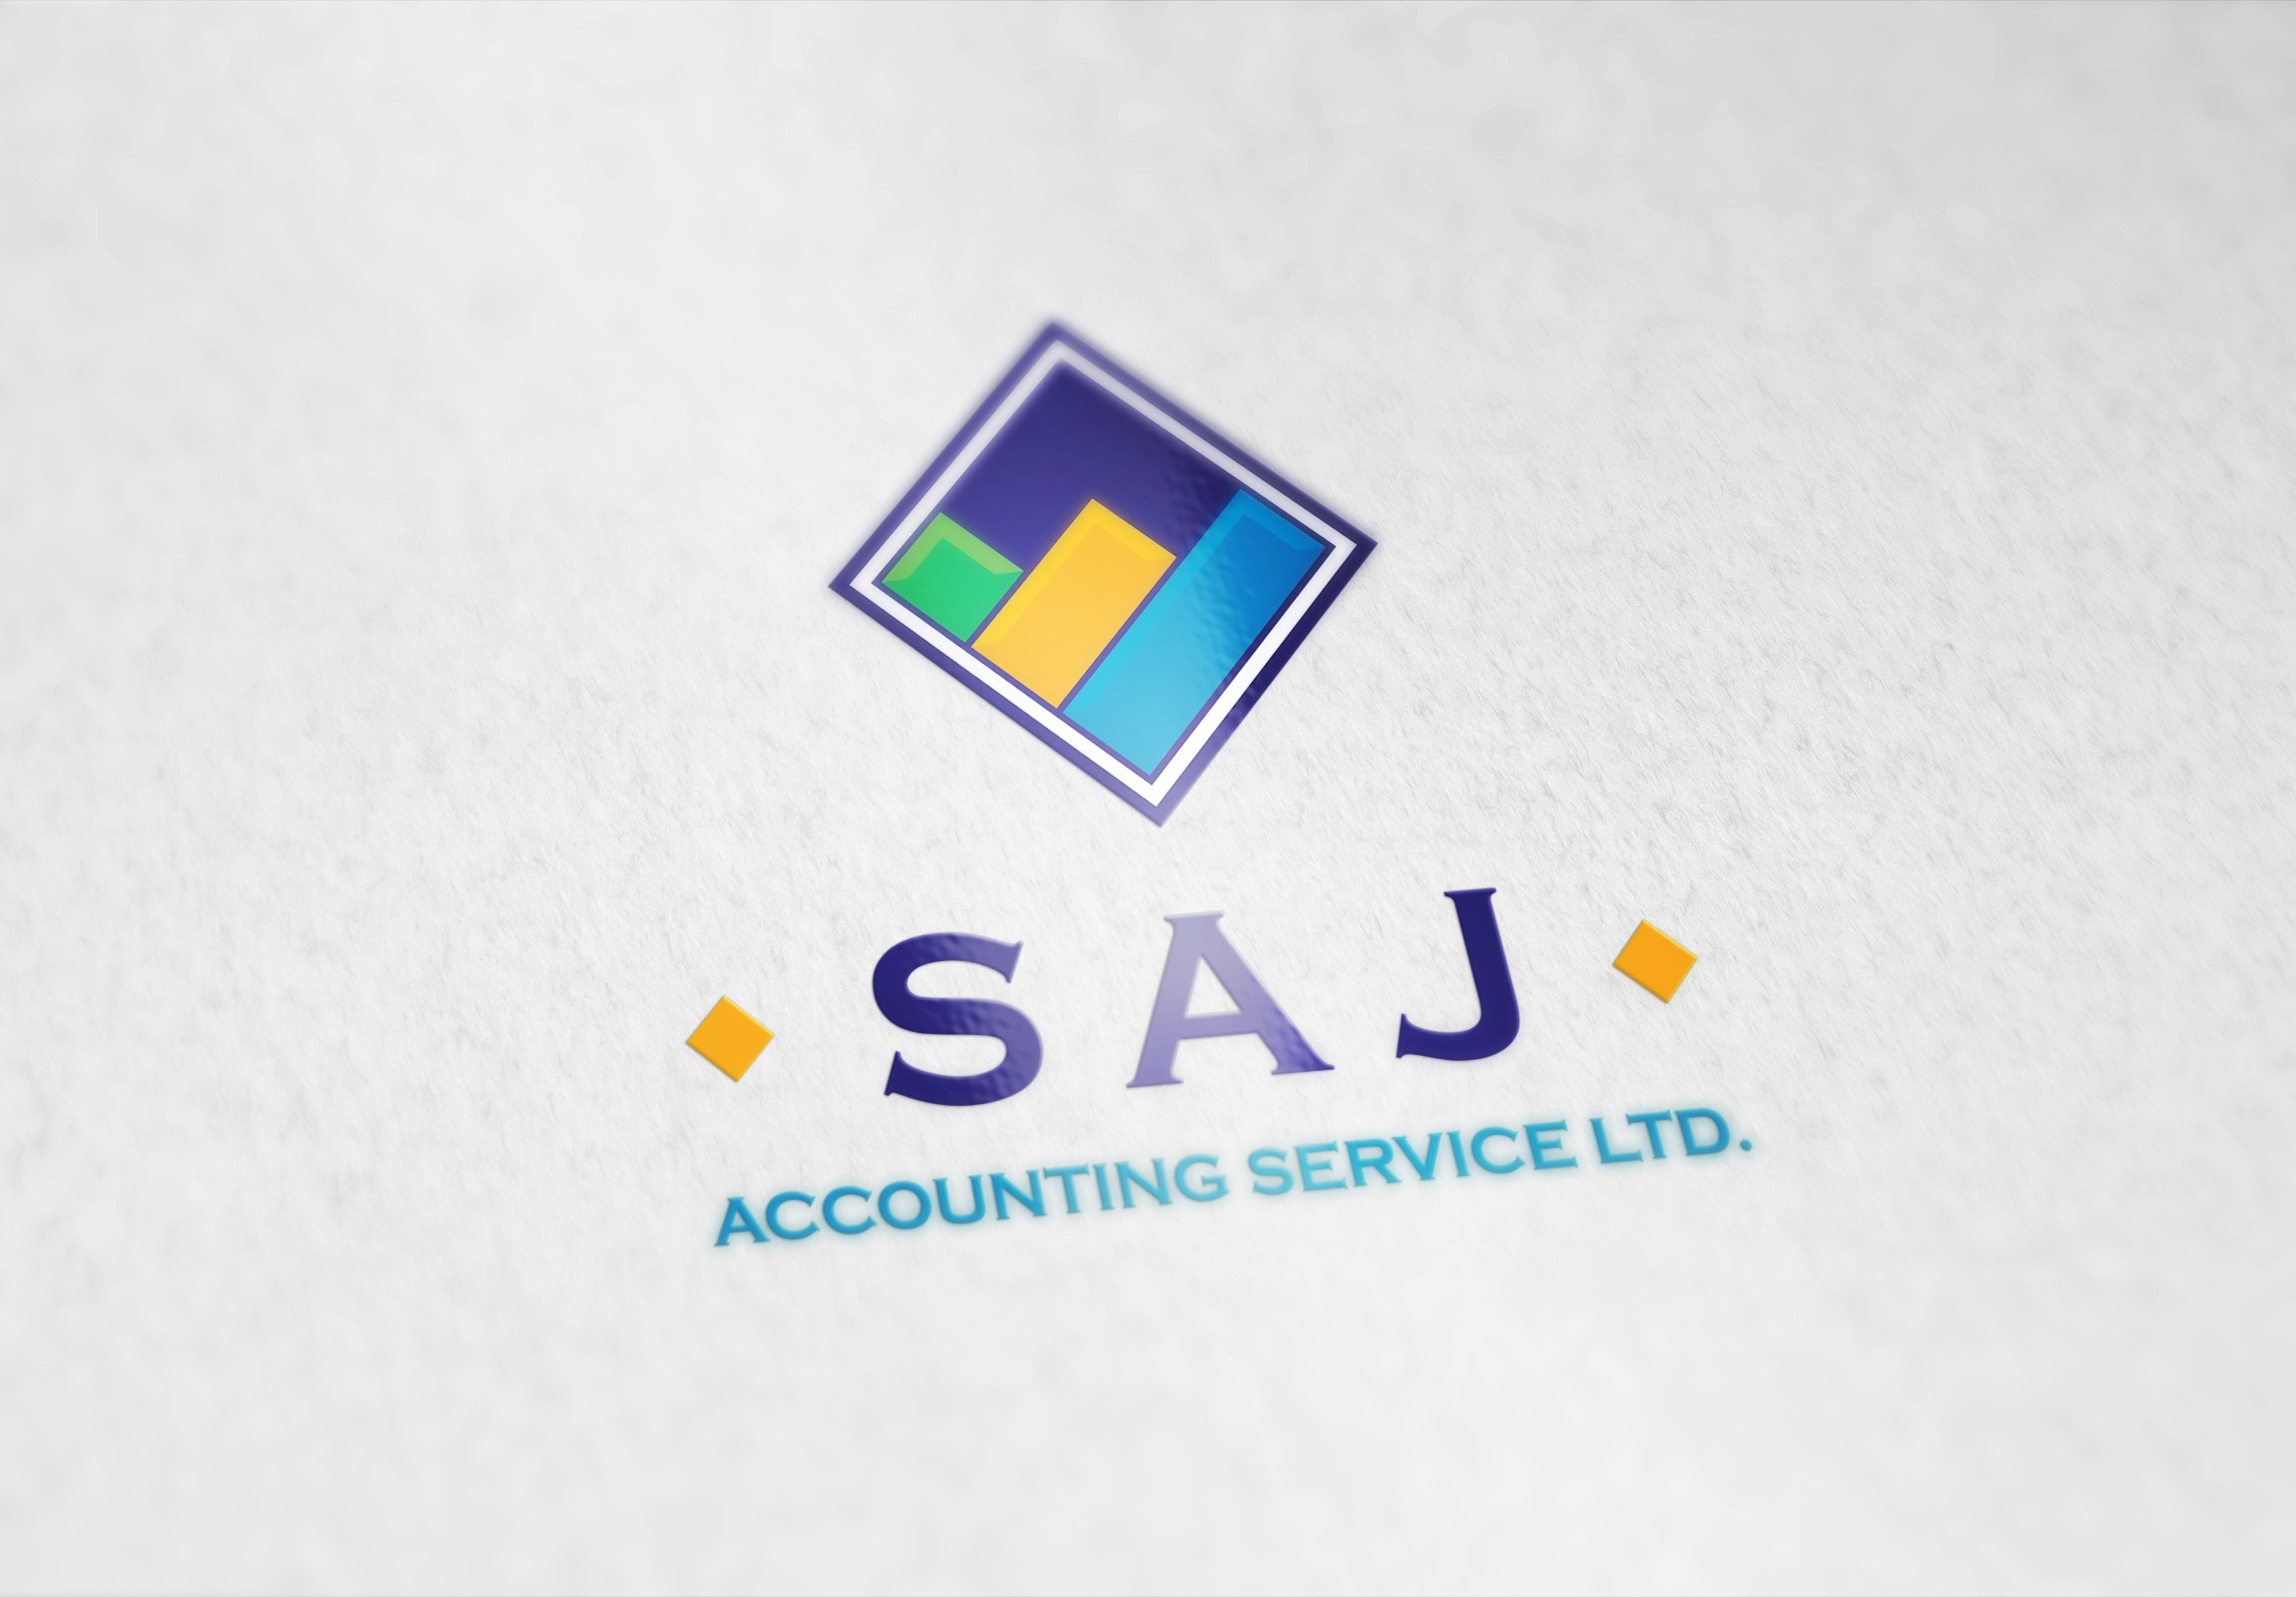 Creating a nice and elegant logo and website for an Accounting firm